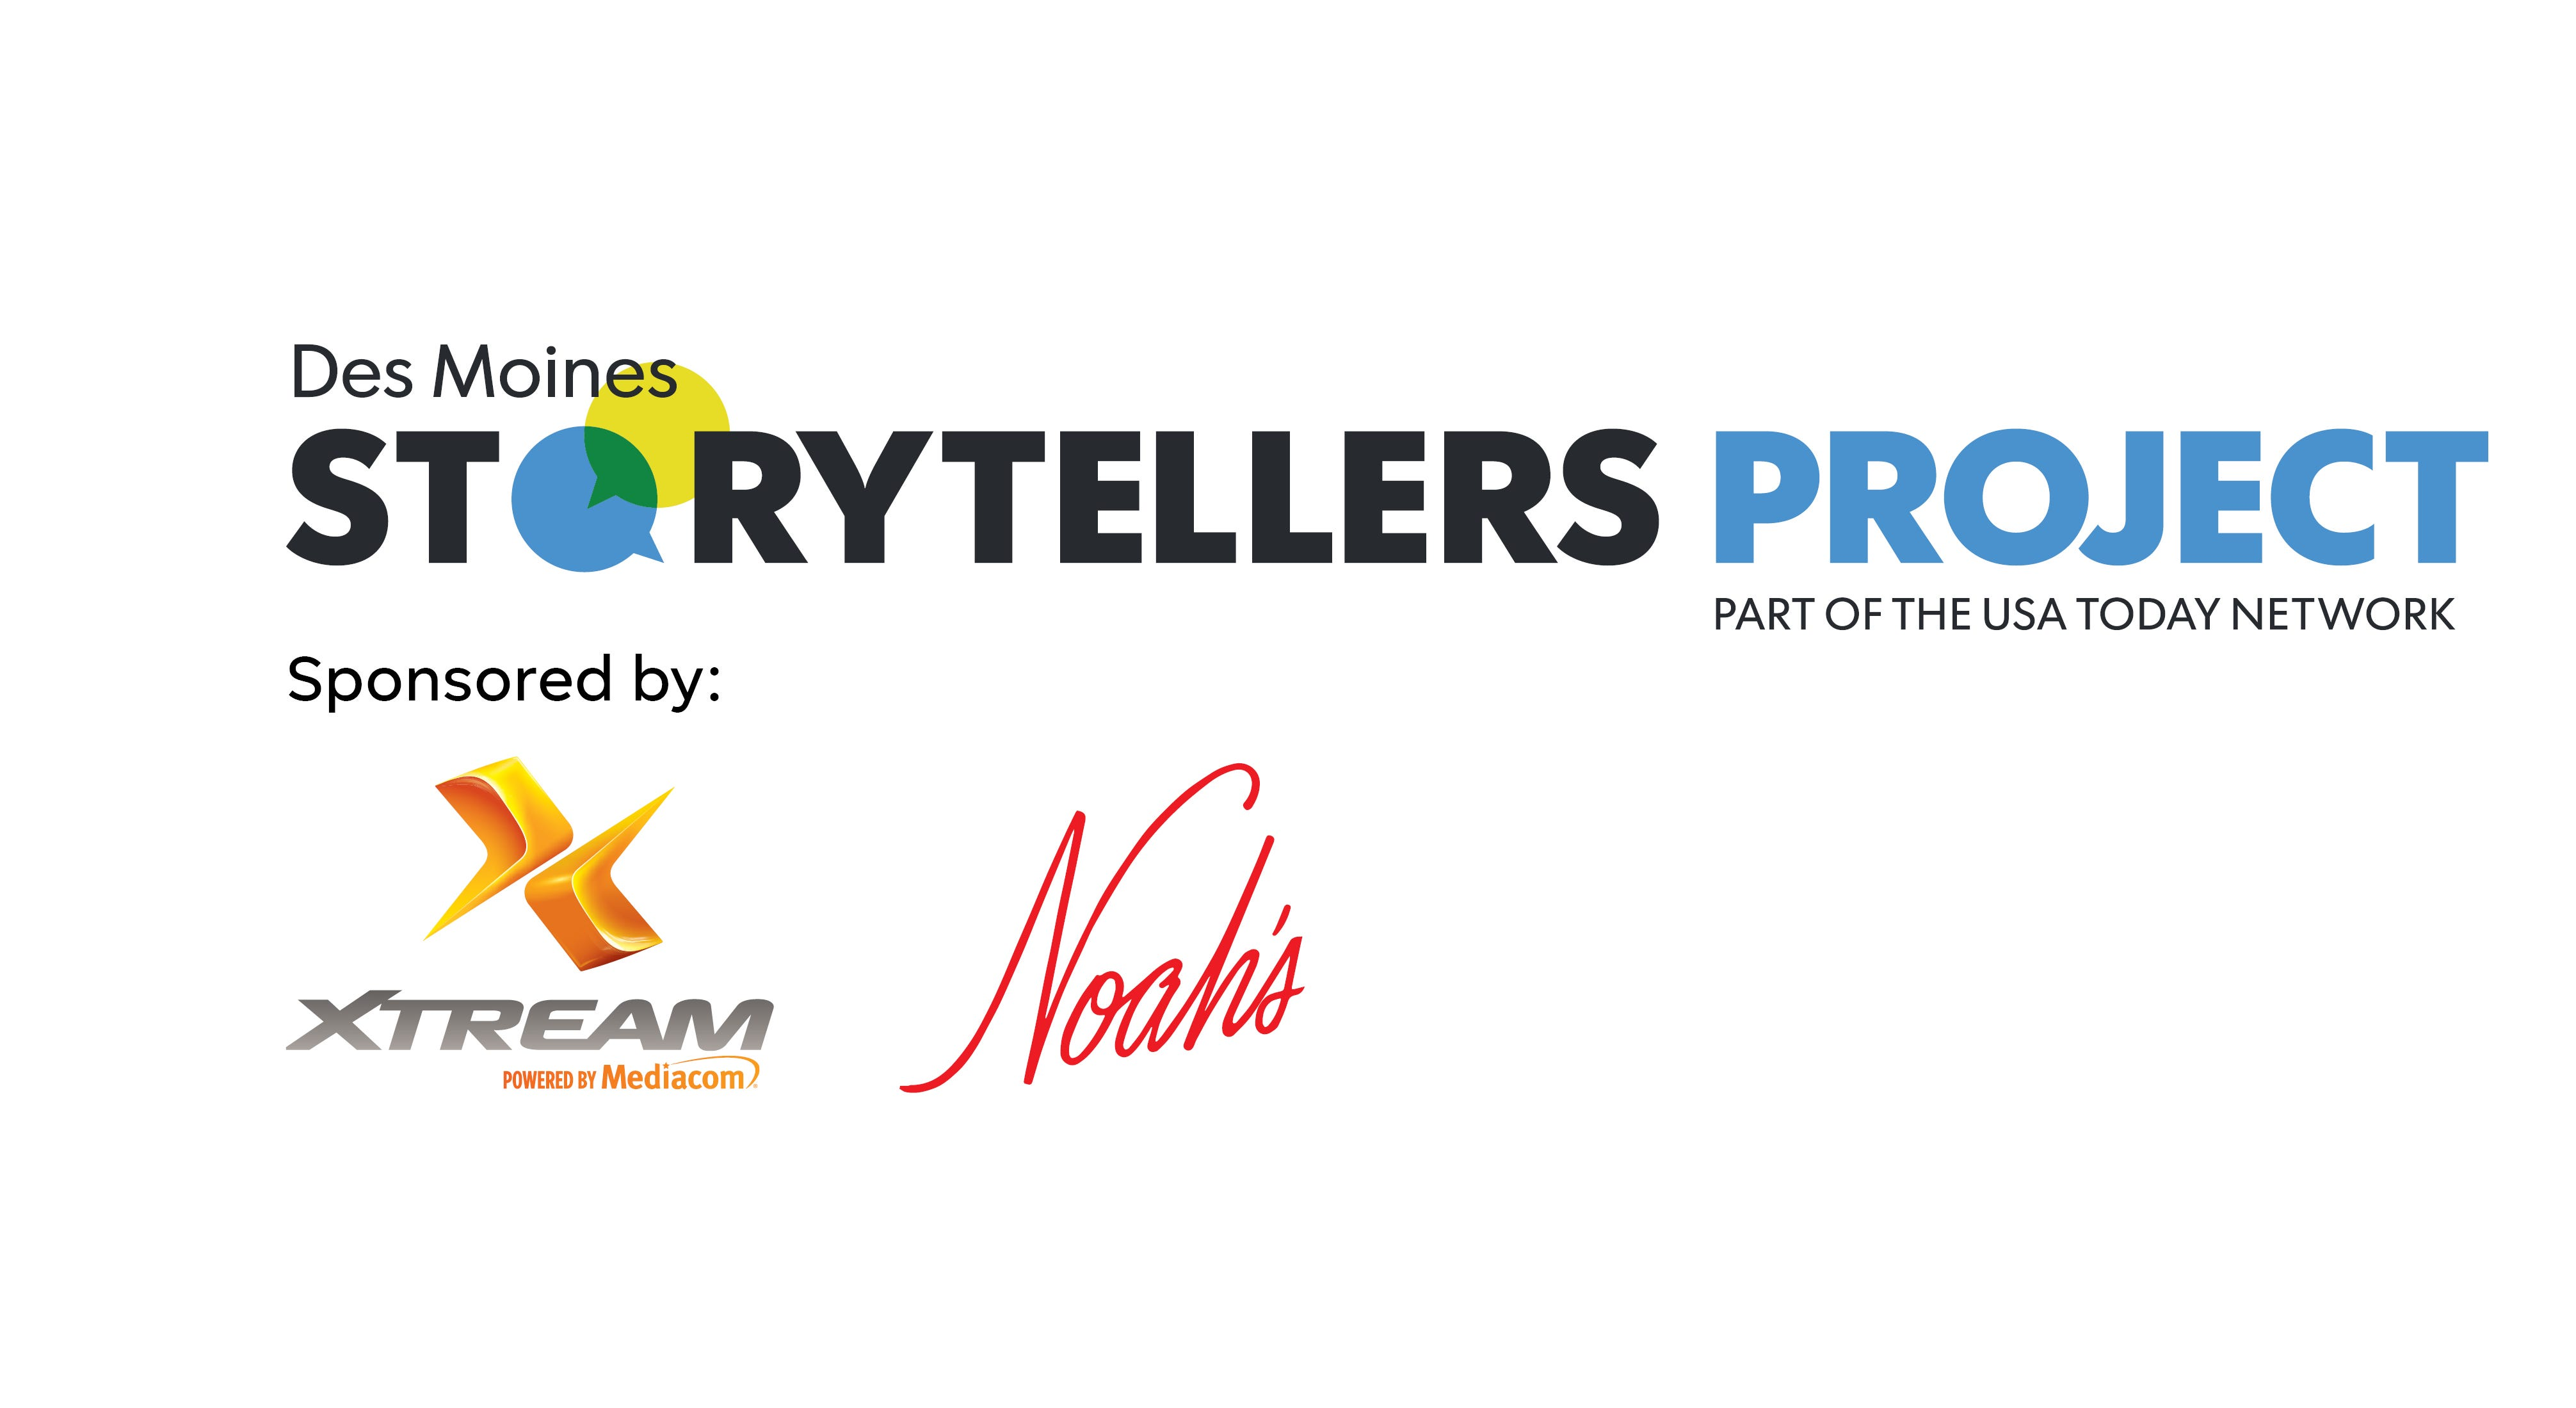 "The Des Moines Storytellers Project is sponsored by Xtream, powered by Mediacom, and Noah's Ark. <br><br> Learn more at <a href=""https://www.storytellersproject.com/city/des-moines/"" target=""_blank"">DesMoinesRegister.com/Storytellers</a>."